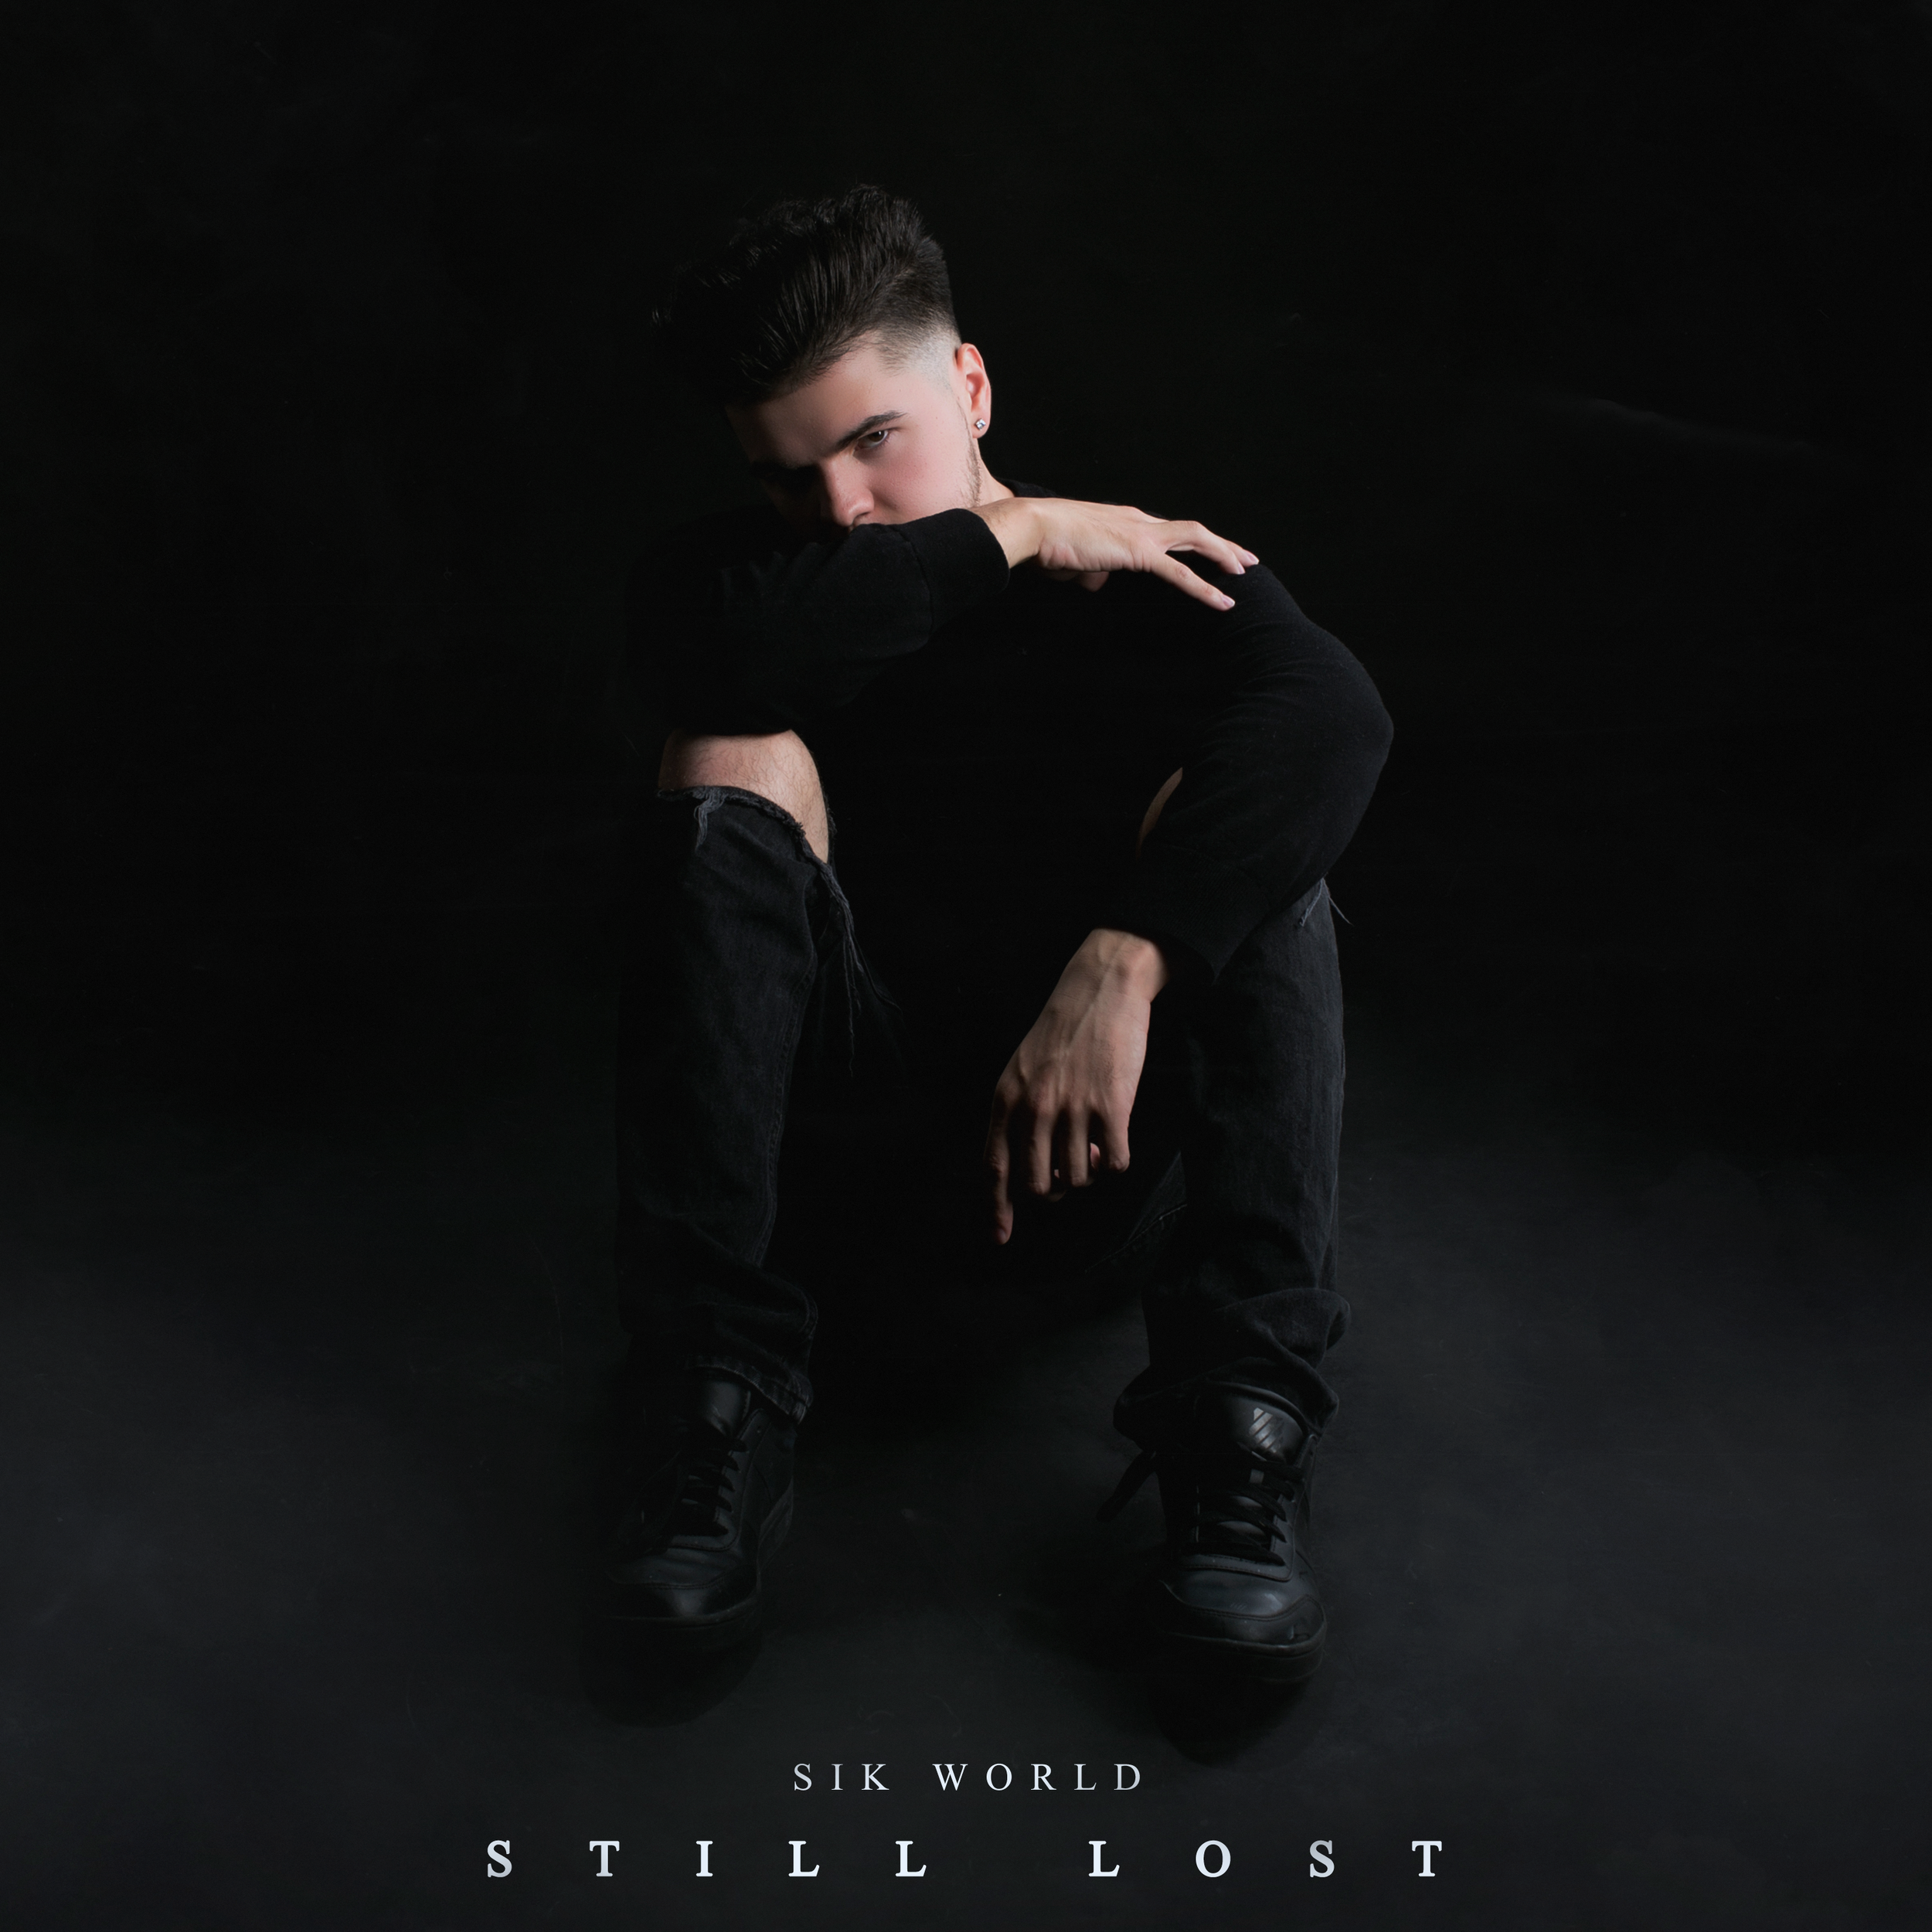 STILL-LOST-ALBUM-COVER-FINAL (2).png